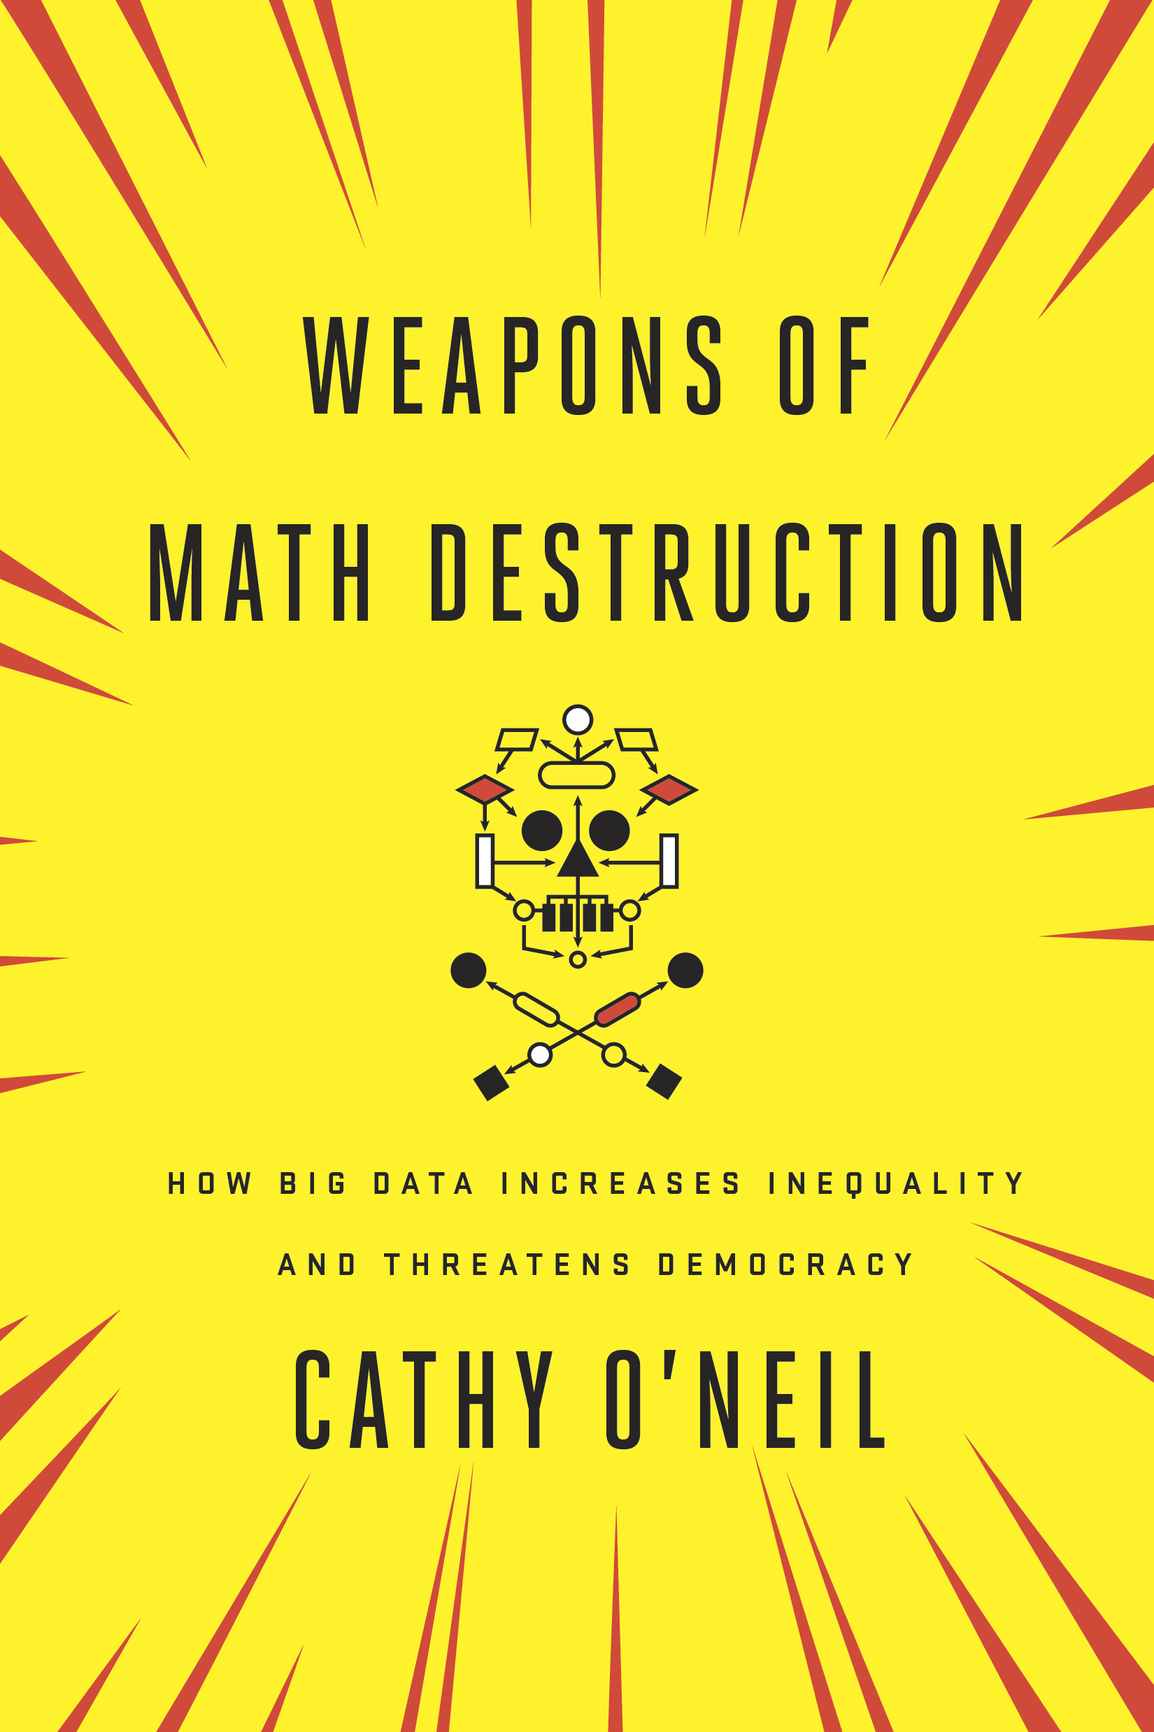 Weapons of Mass Destruction © Cathy O'Neil